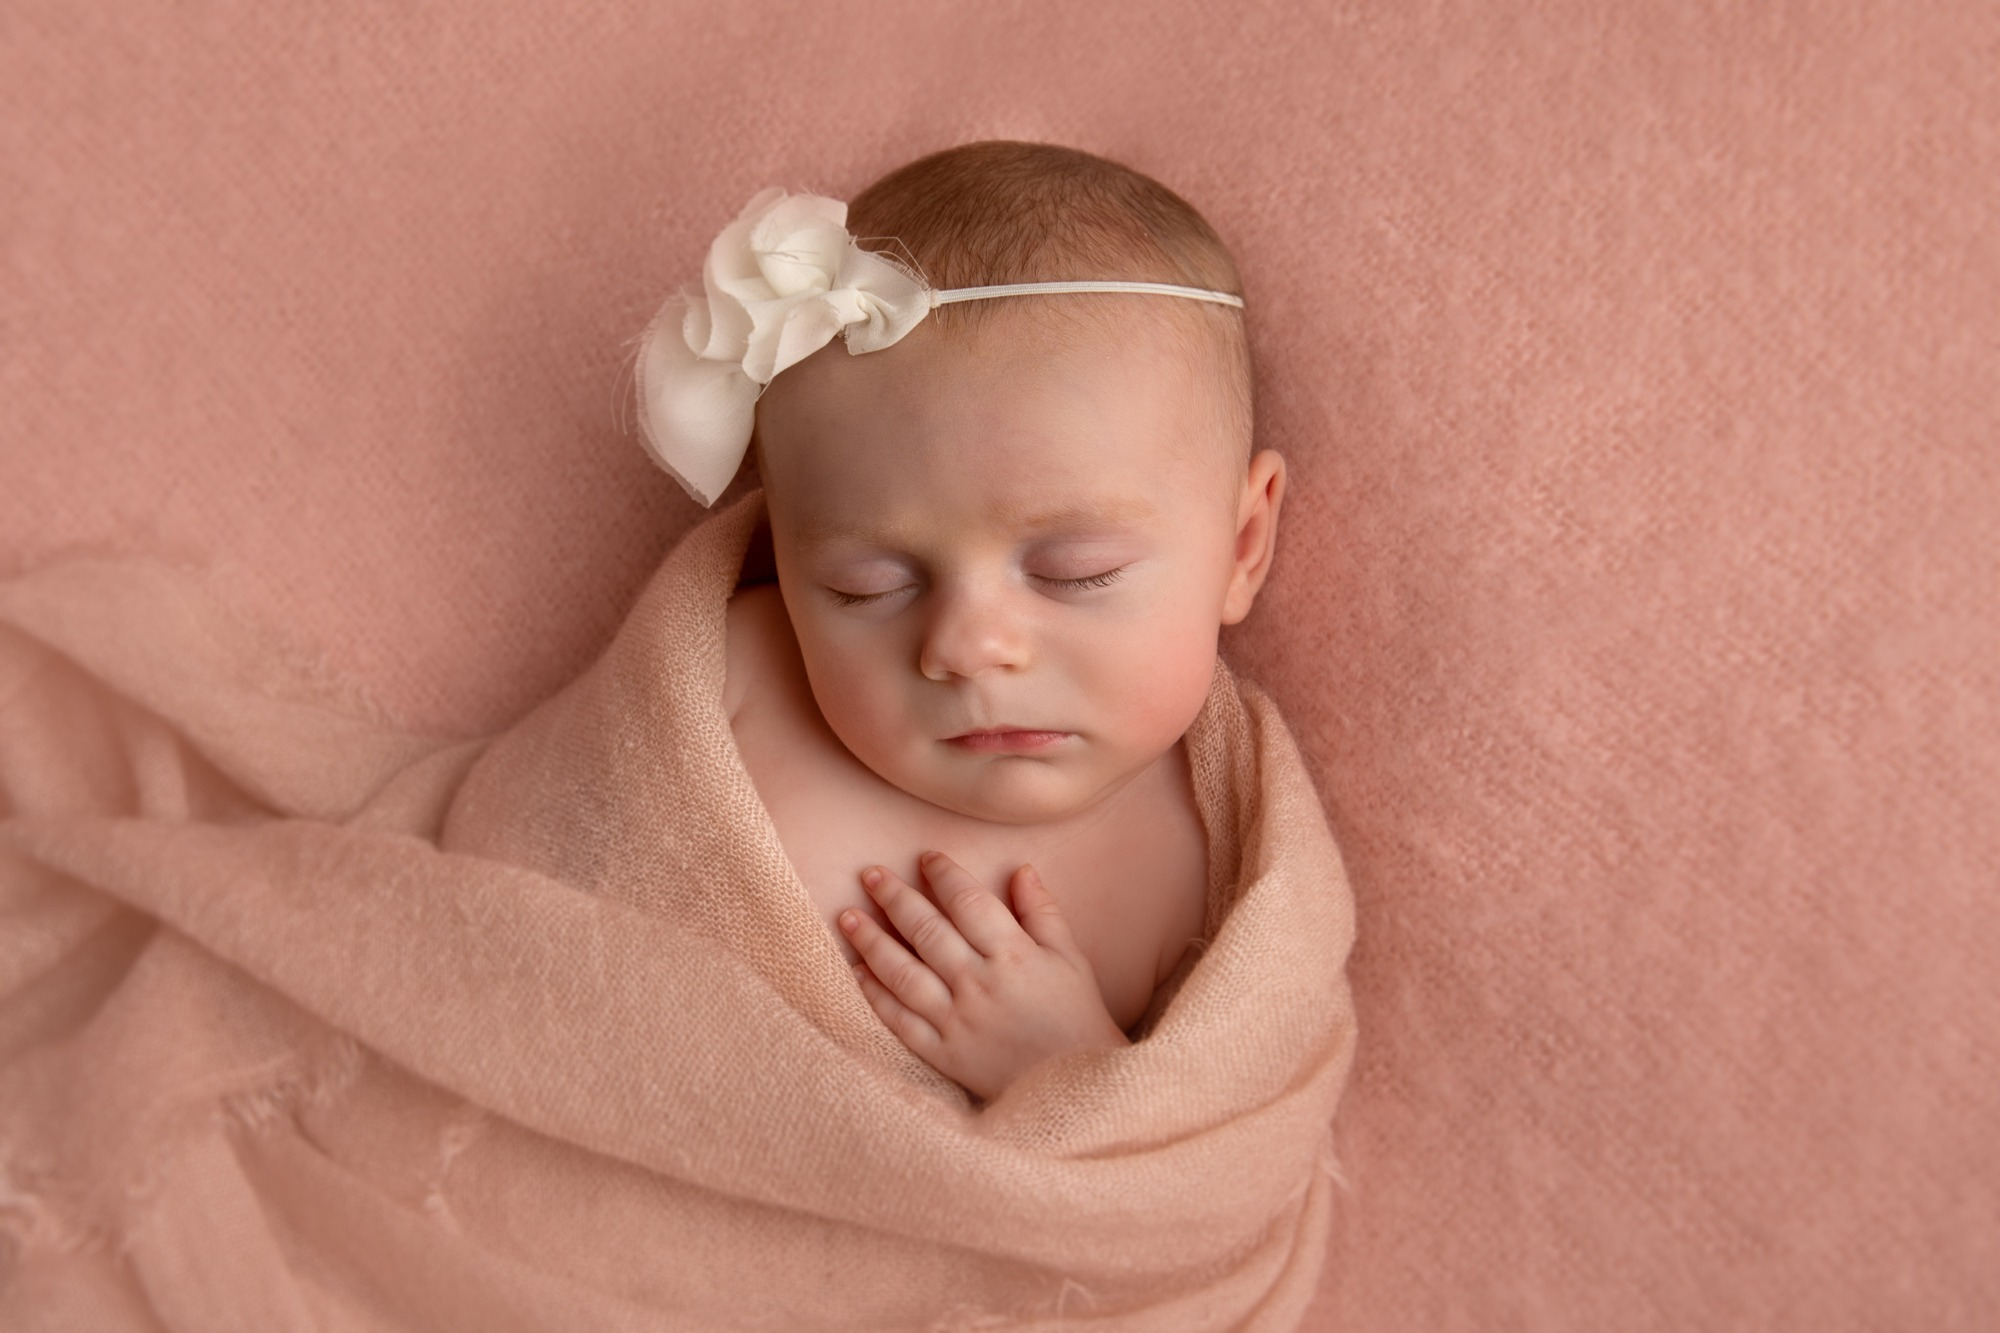 Newborn with white headband in studio photoshoot